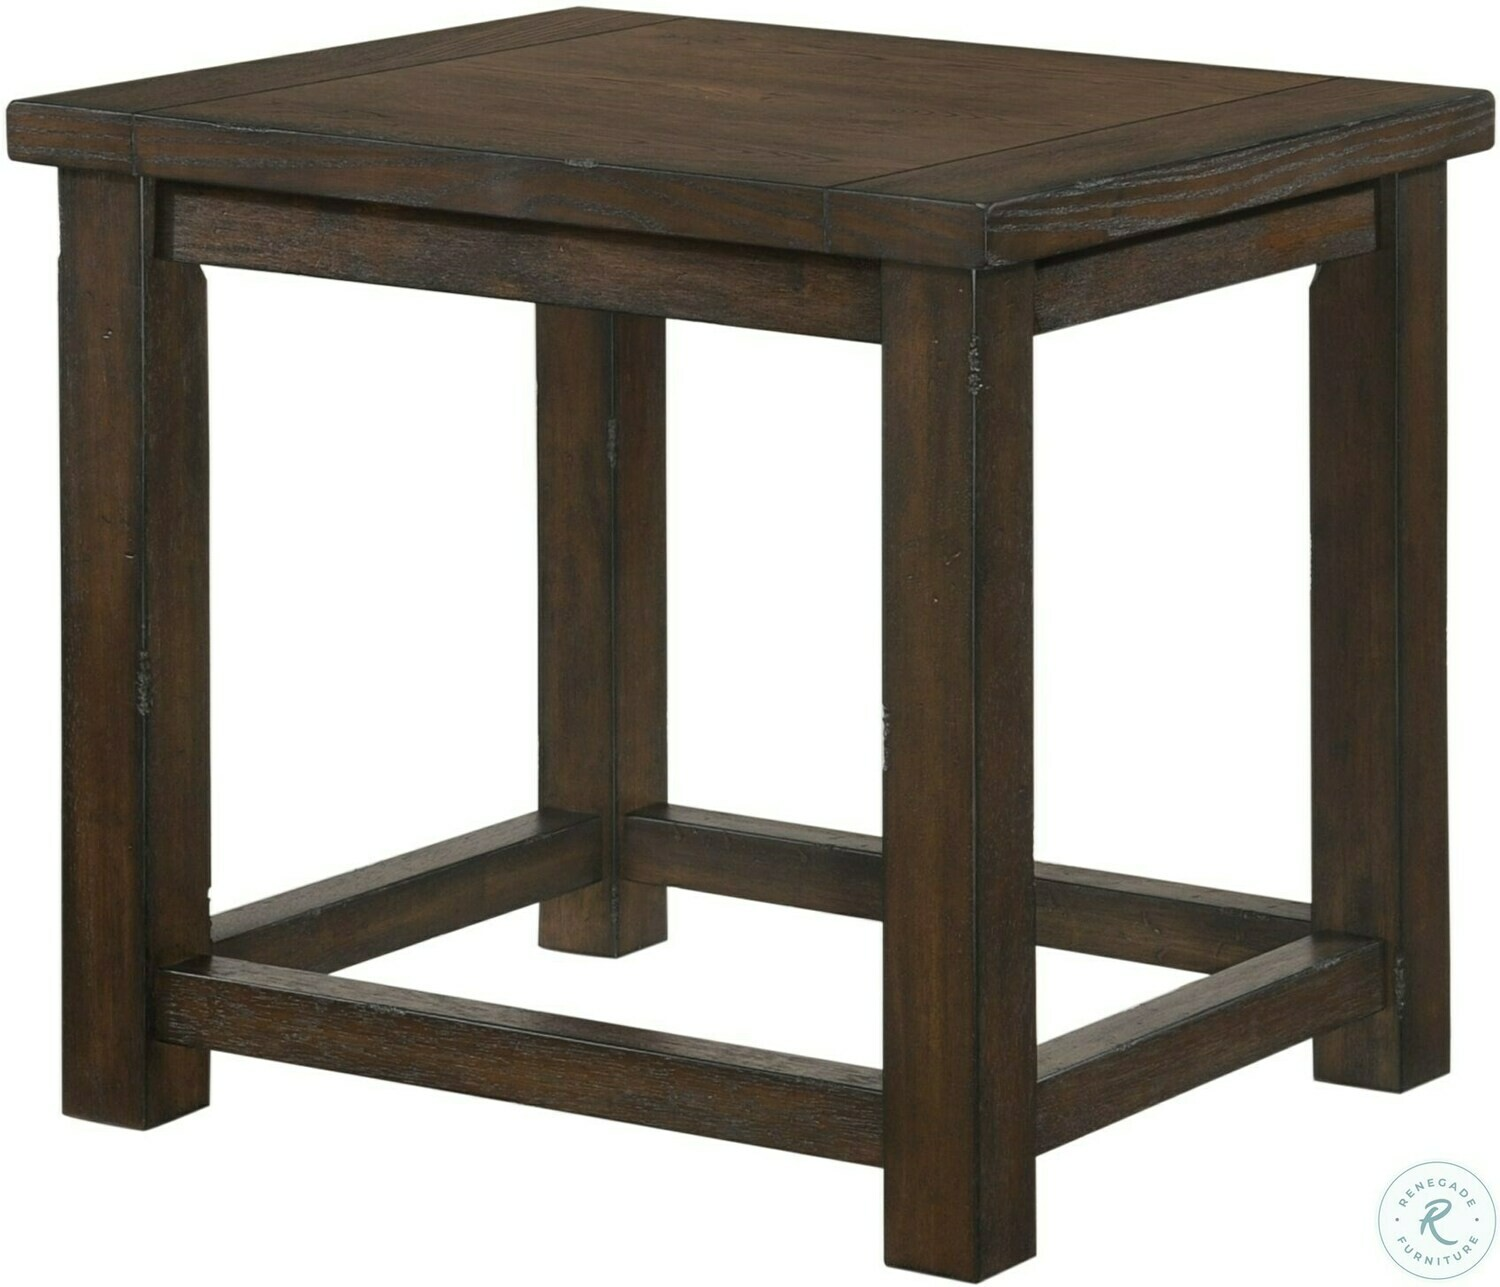 7583-47 END TABLE